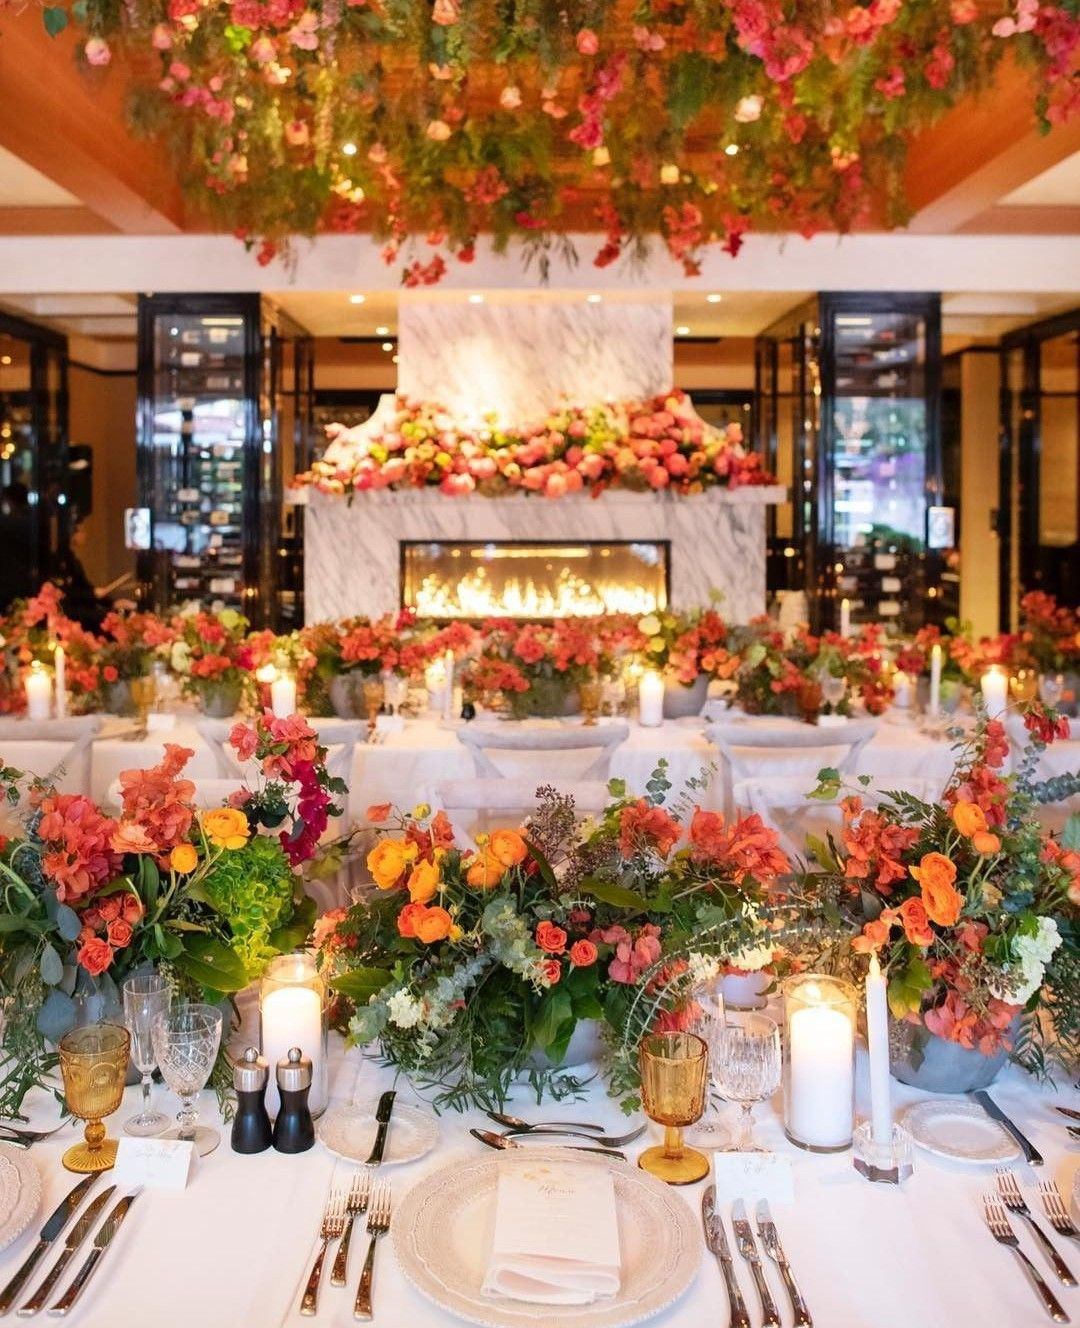 Pin By Nicole Fults On Fall Country Rustic Outdoor Wedding